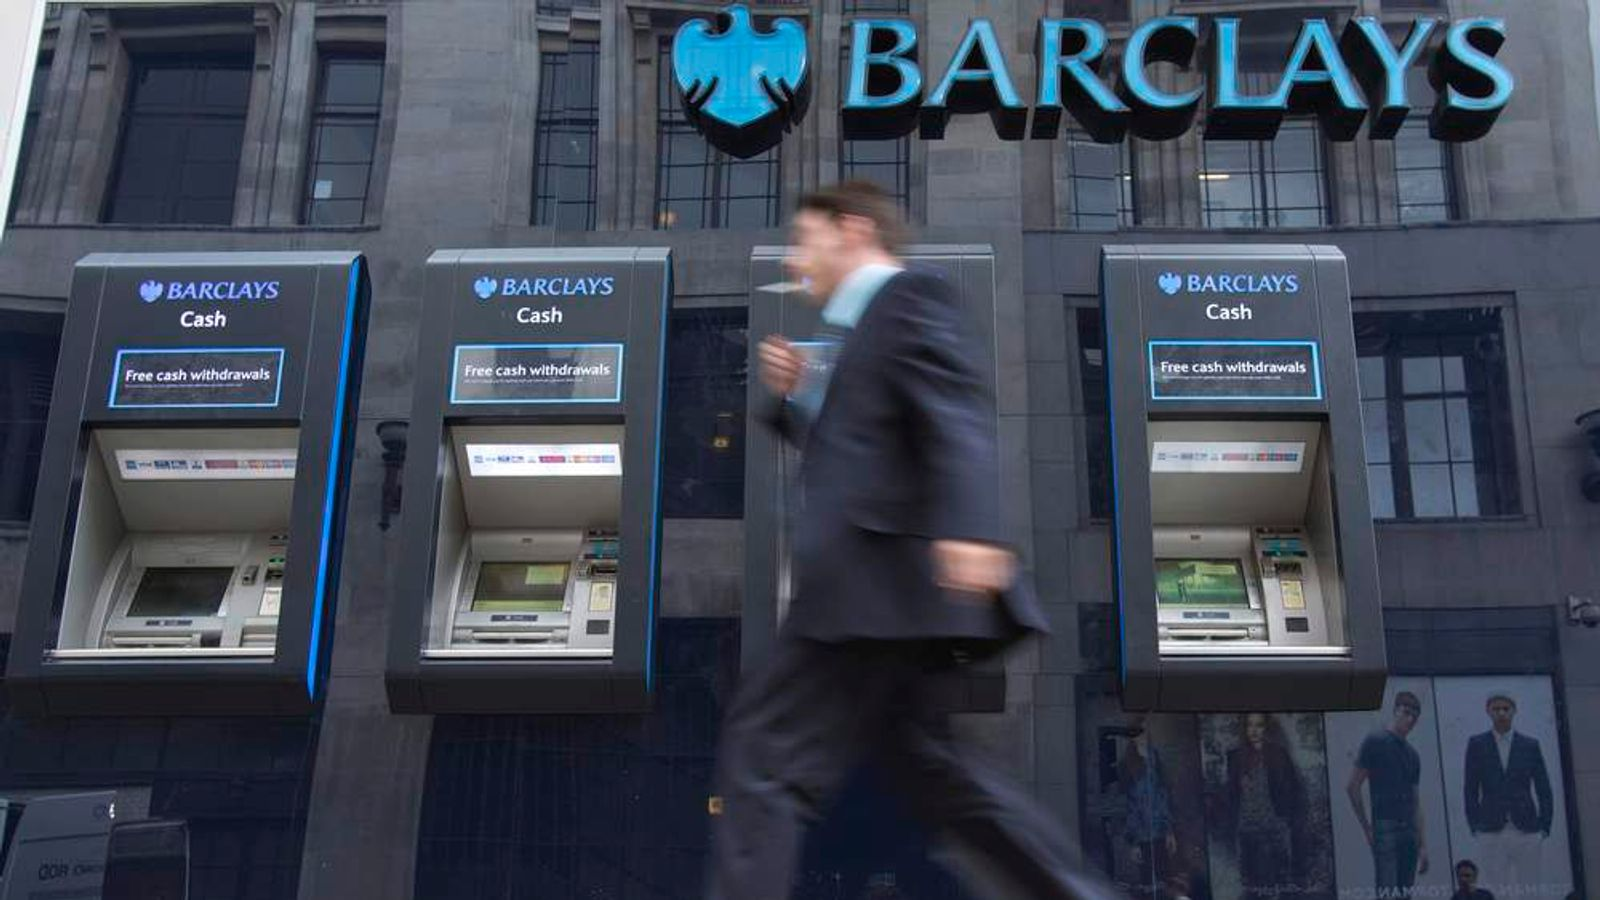 A man passes automated teller machines at a Barclays bank branch in London